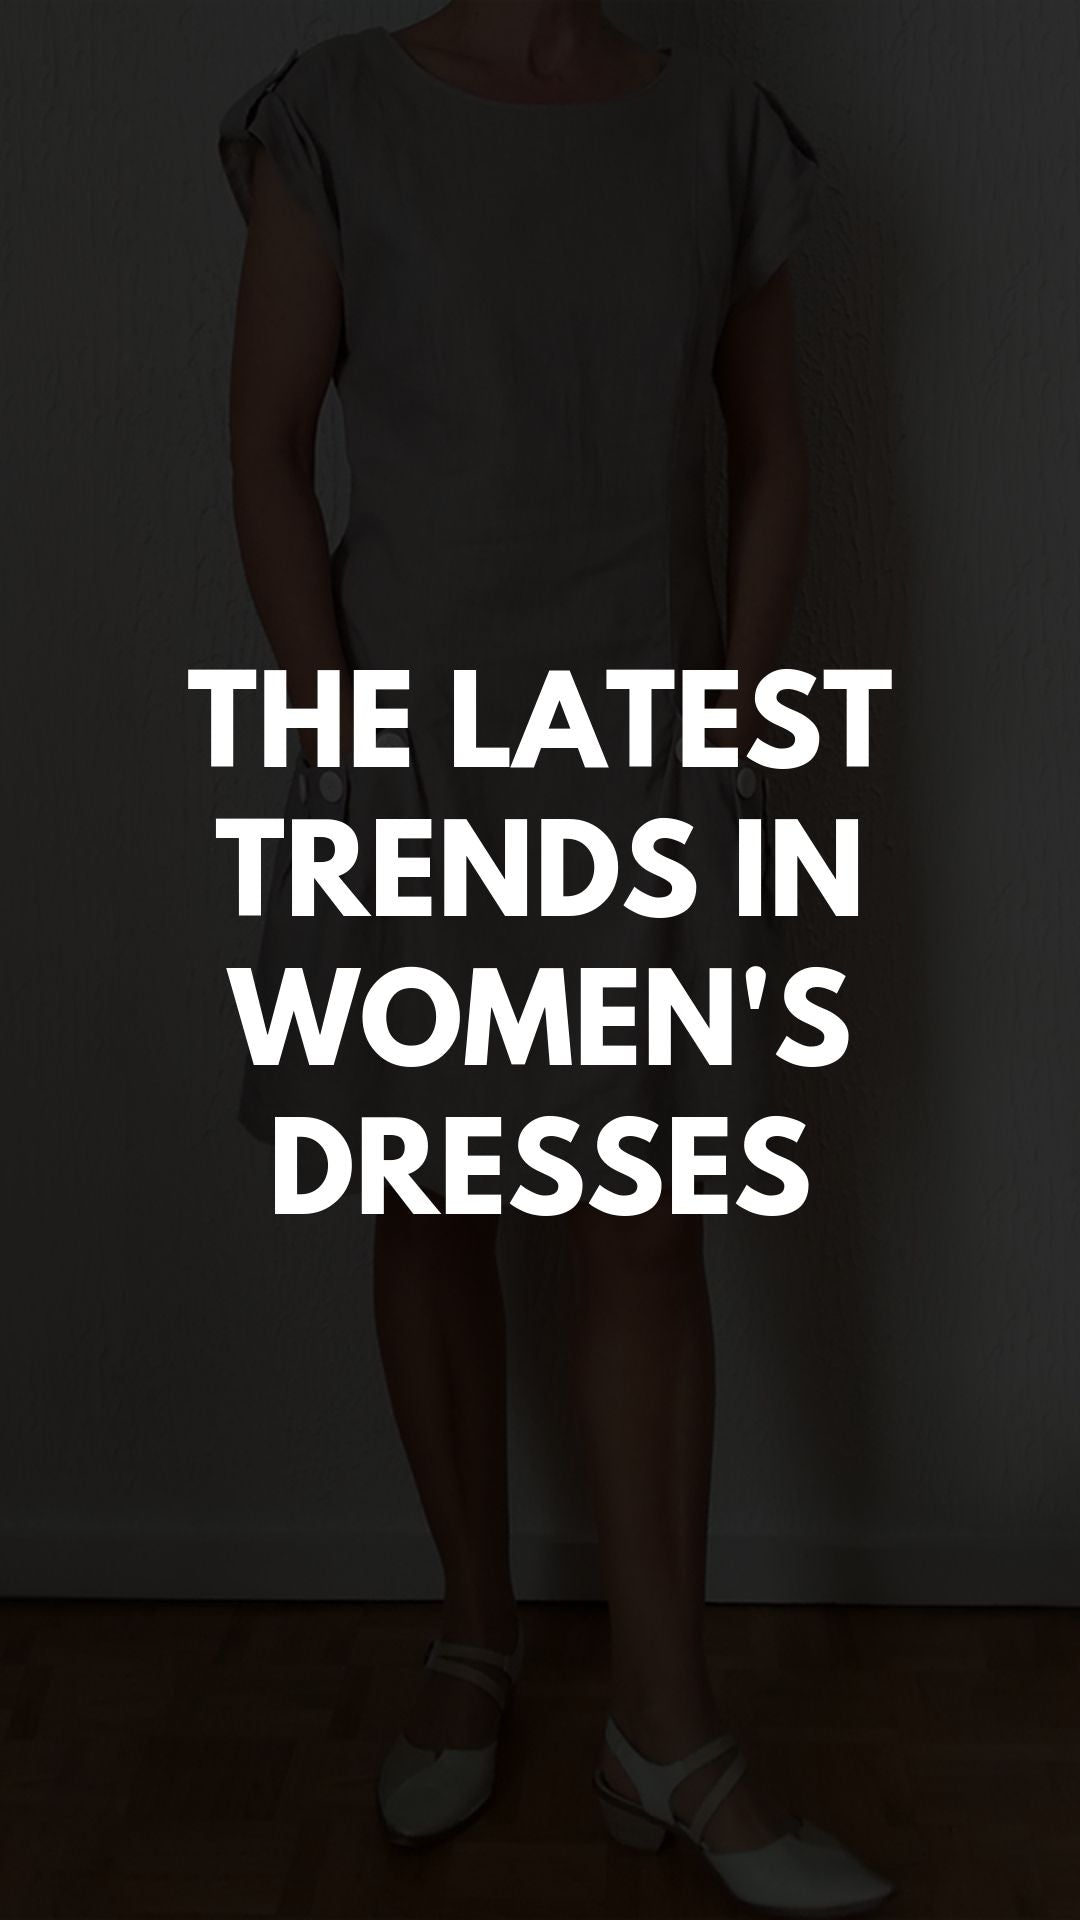 The Latest Trends In Women's Dresses